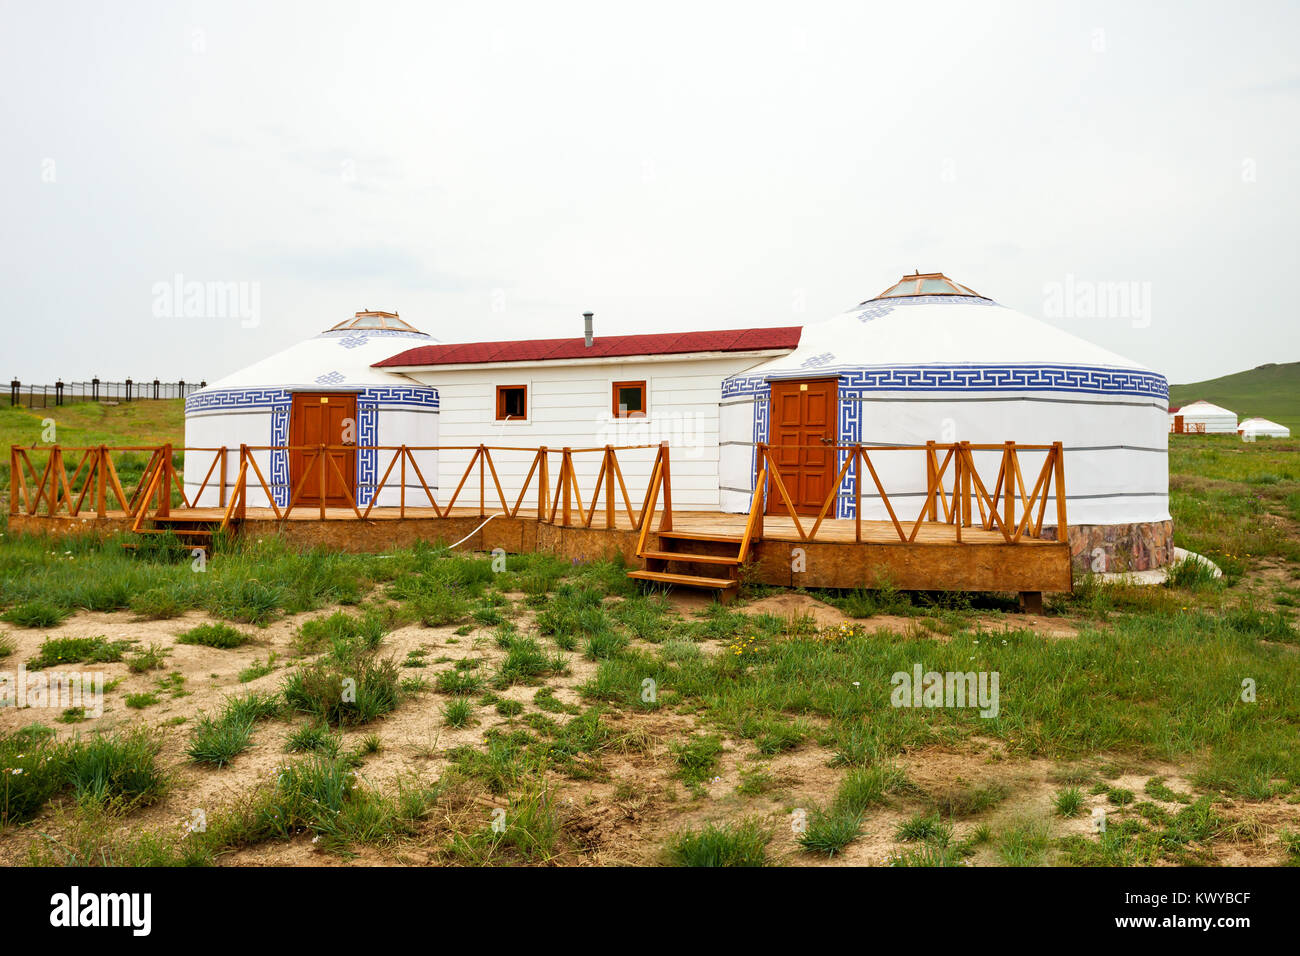 Traditional mongolian yurt in the center of Ulaanbaatar, Mongolia Stock Photo